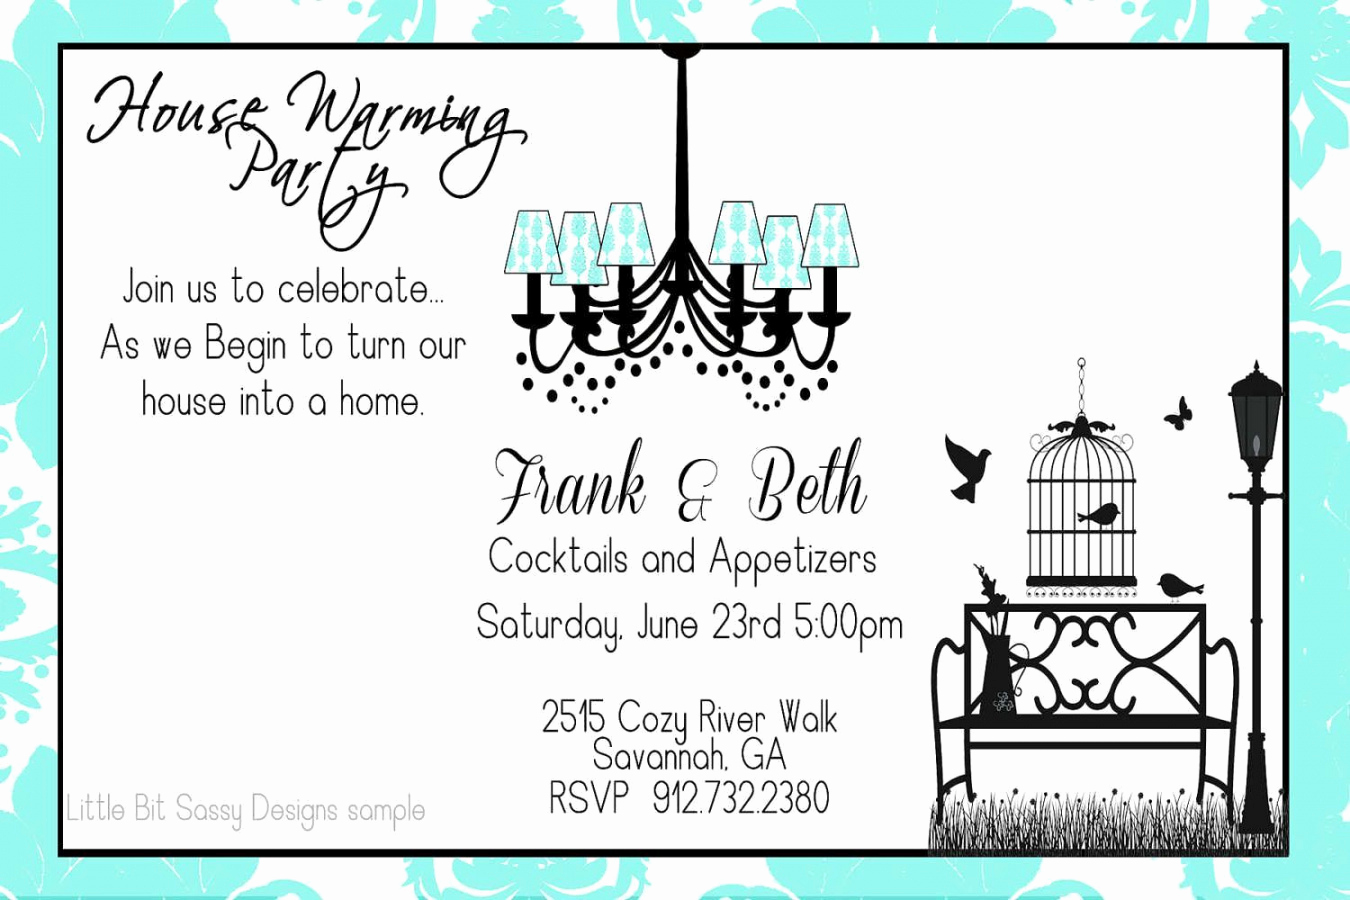 Housewarming Invitation Wording Samples Awesome Free Housewarming Party Invitation Wording House Warming